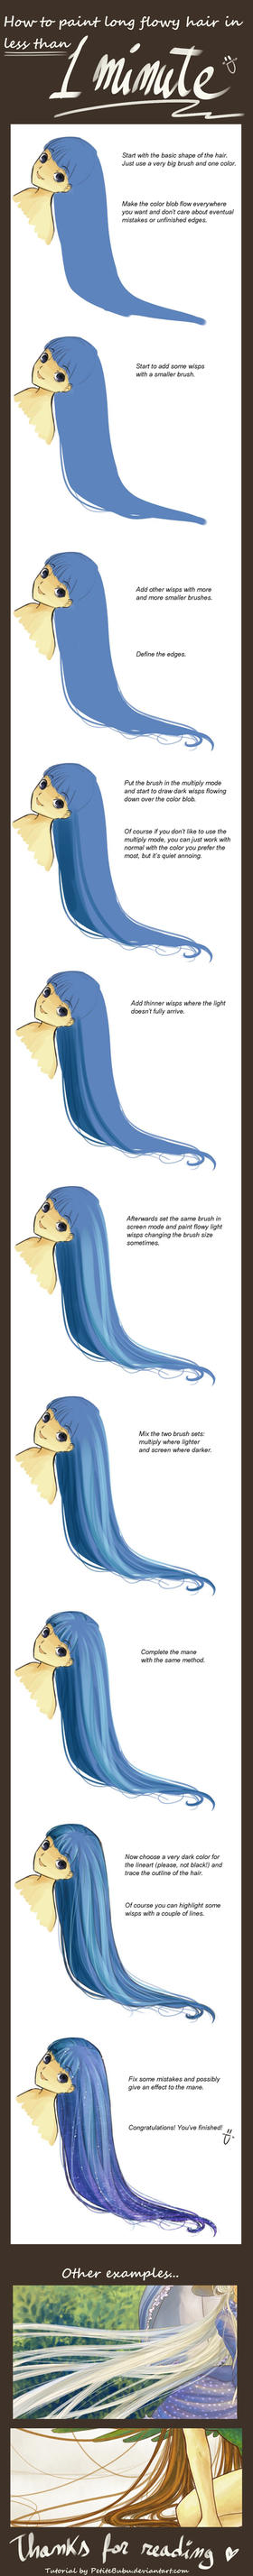 How to paint flowy long hair in less than 1 minute by PetiteBubu